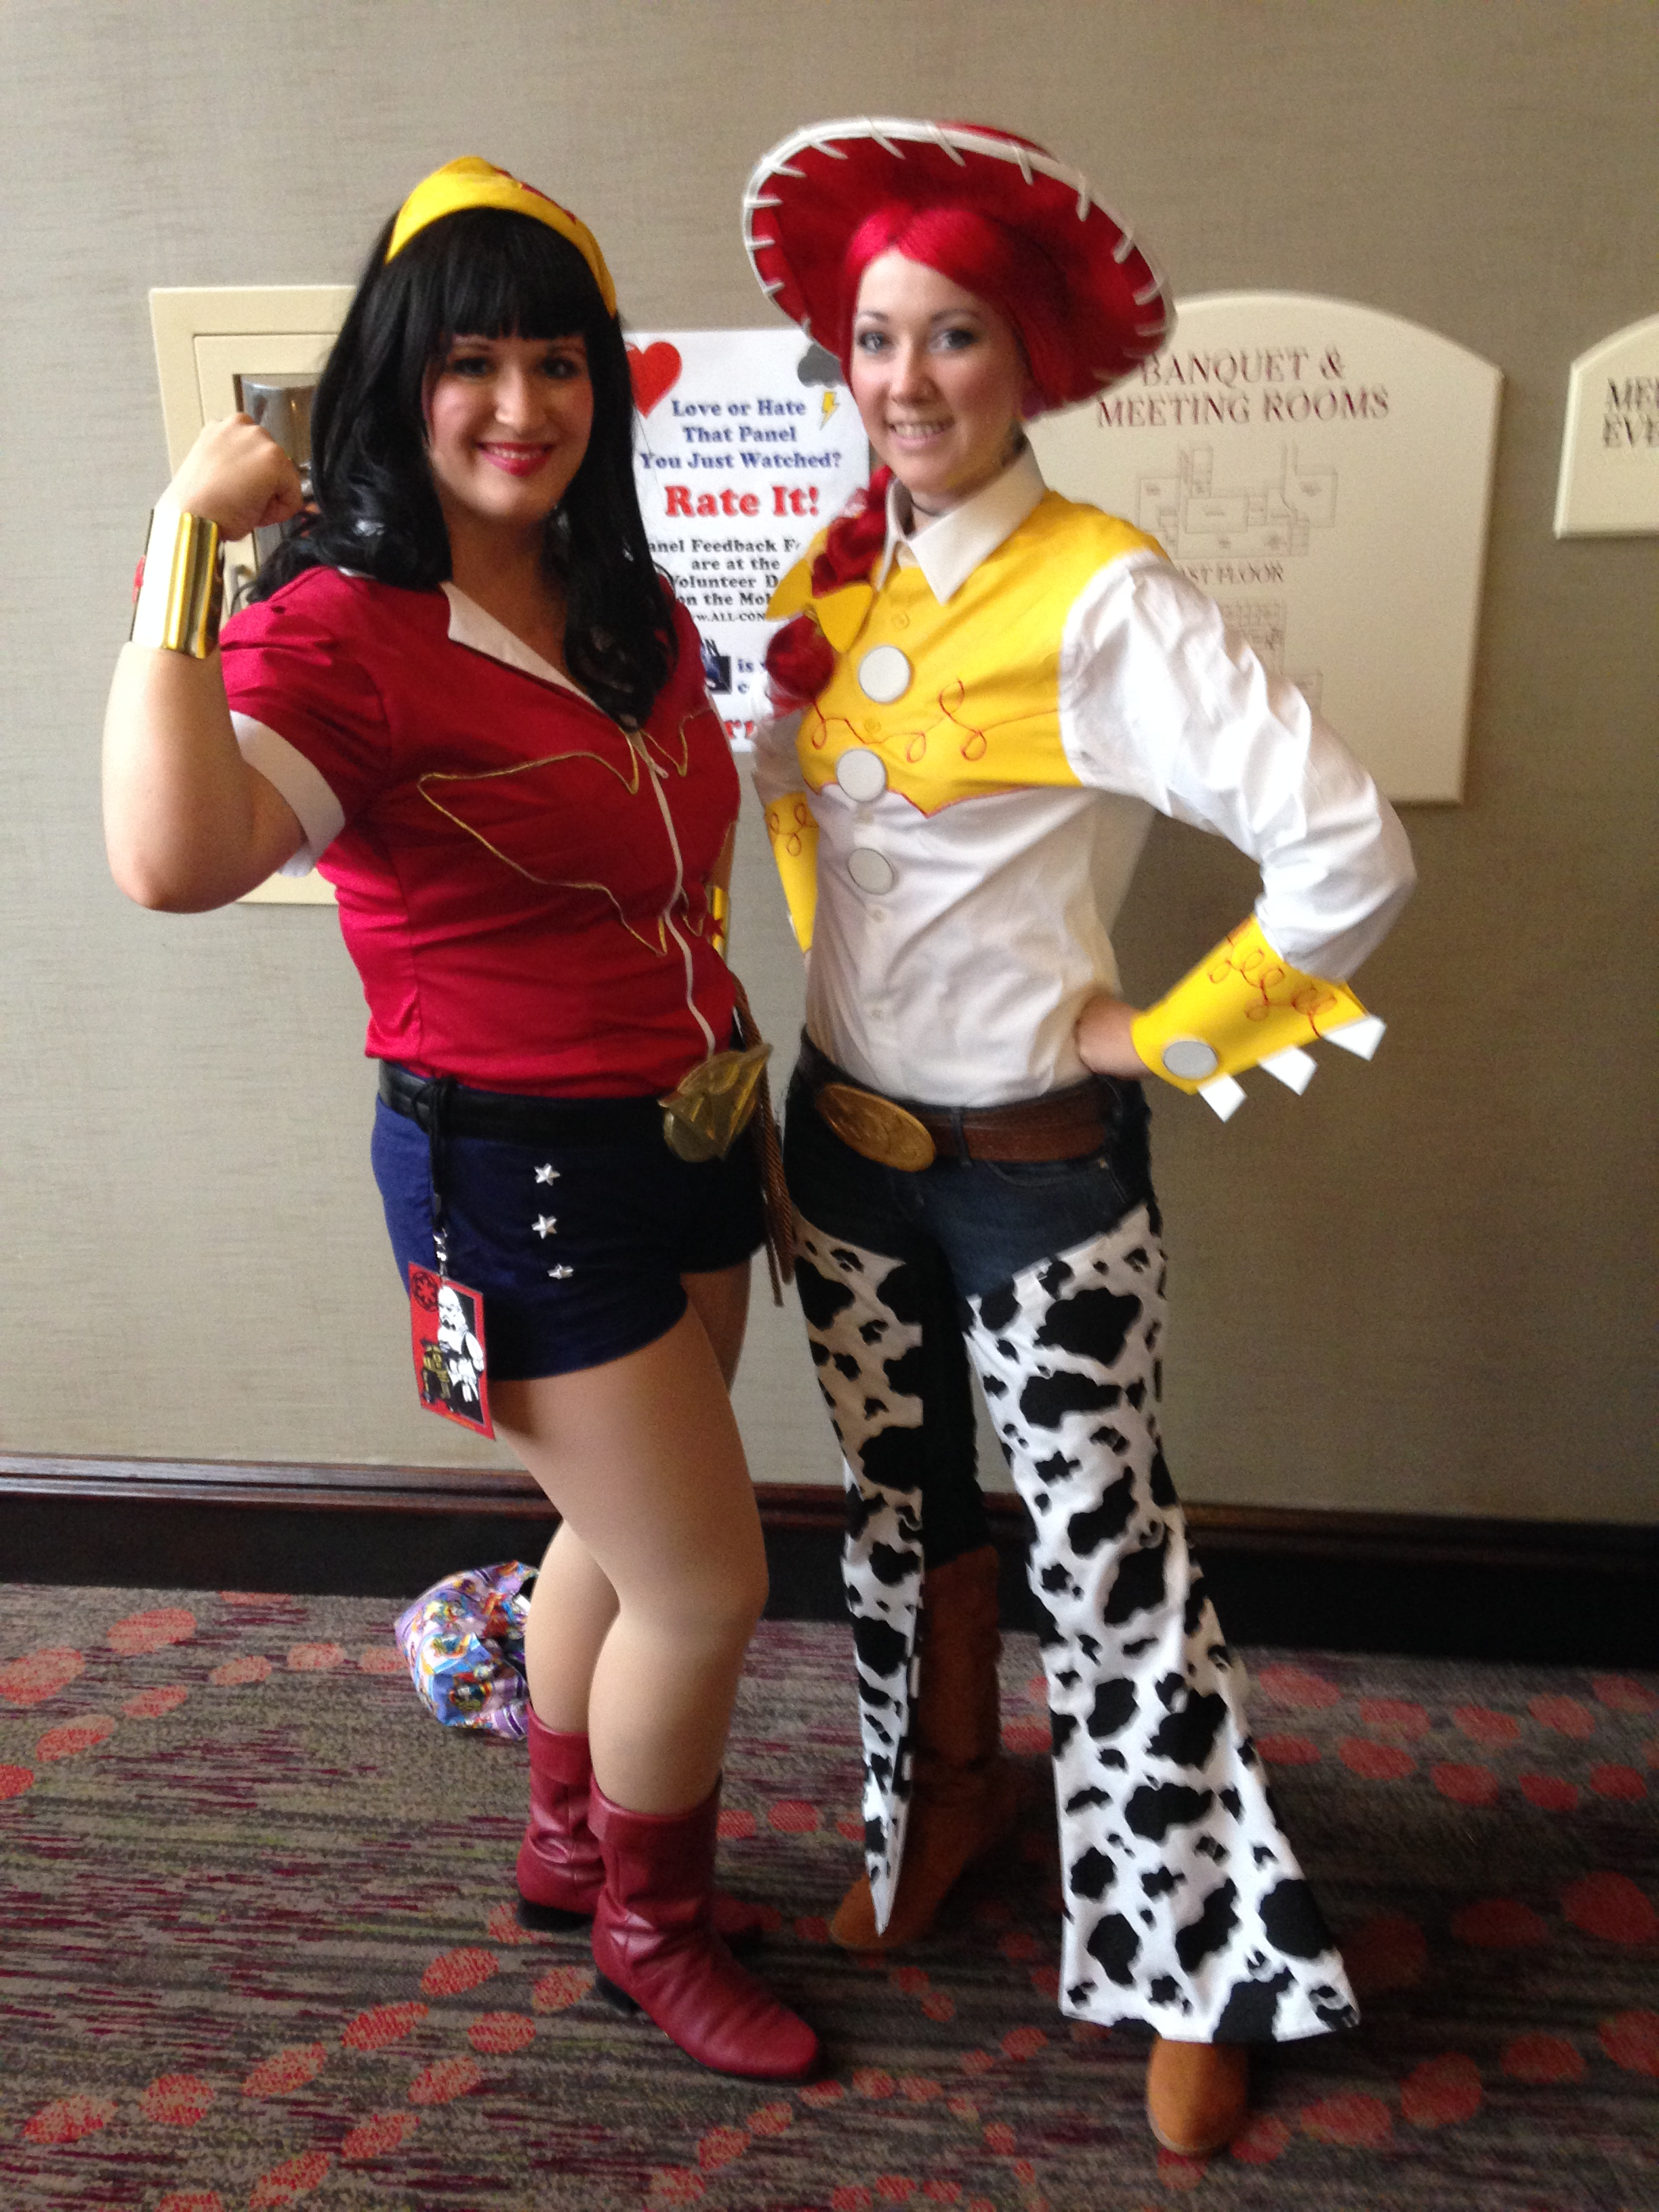 Me as Bombshell Wondie and GlitzyGeekGirl as Jessie from Toy Story 3. Her  friend was be62435b05b